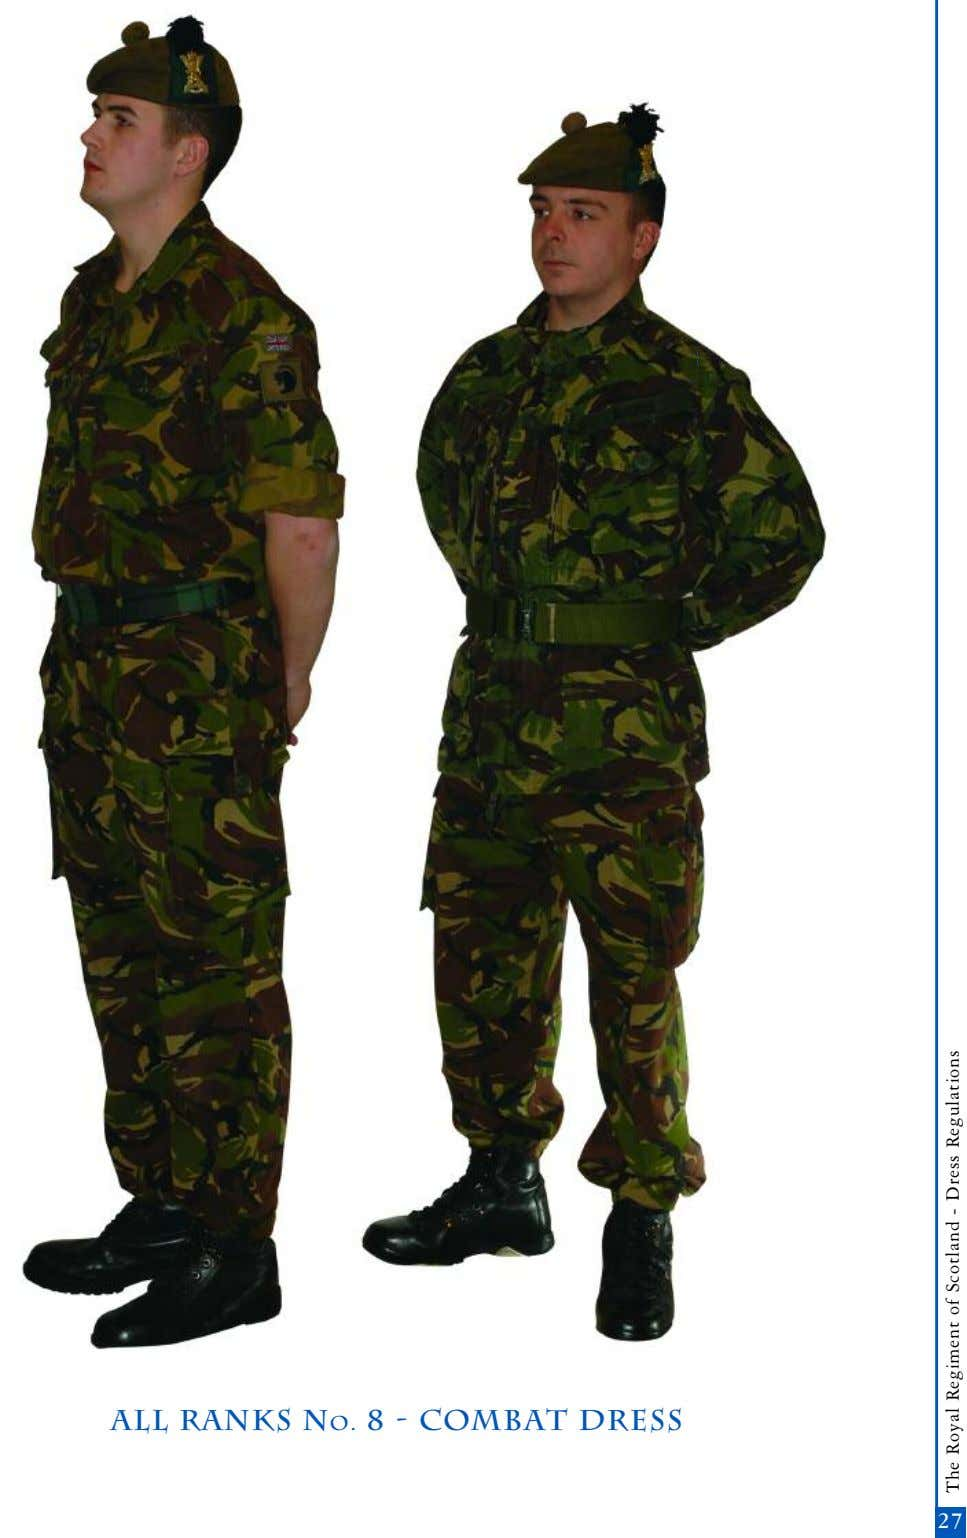 all ranks No. 8 - Combat dress 25 27 The Royal Regiment of Scotland -